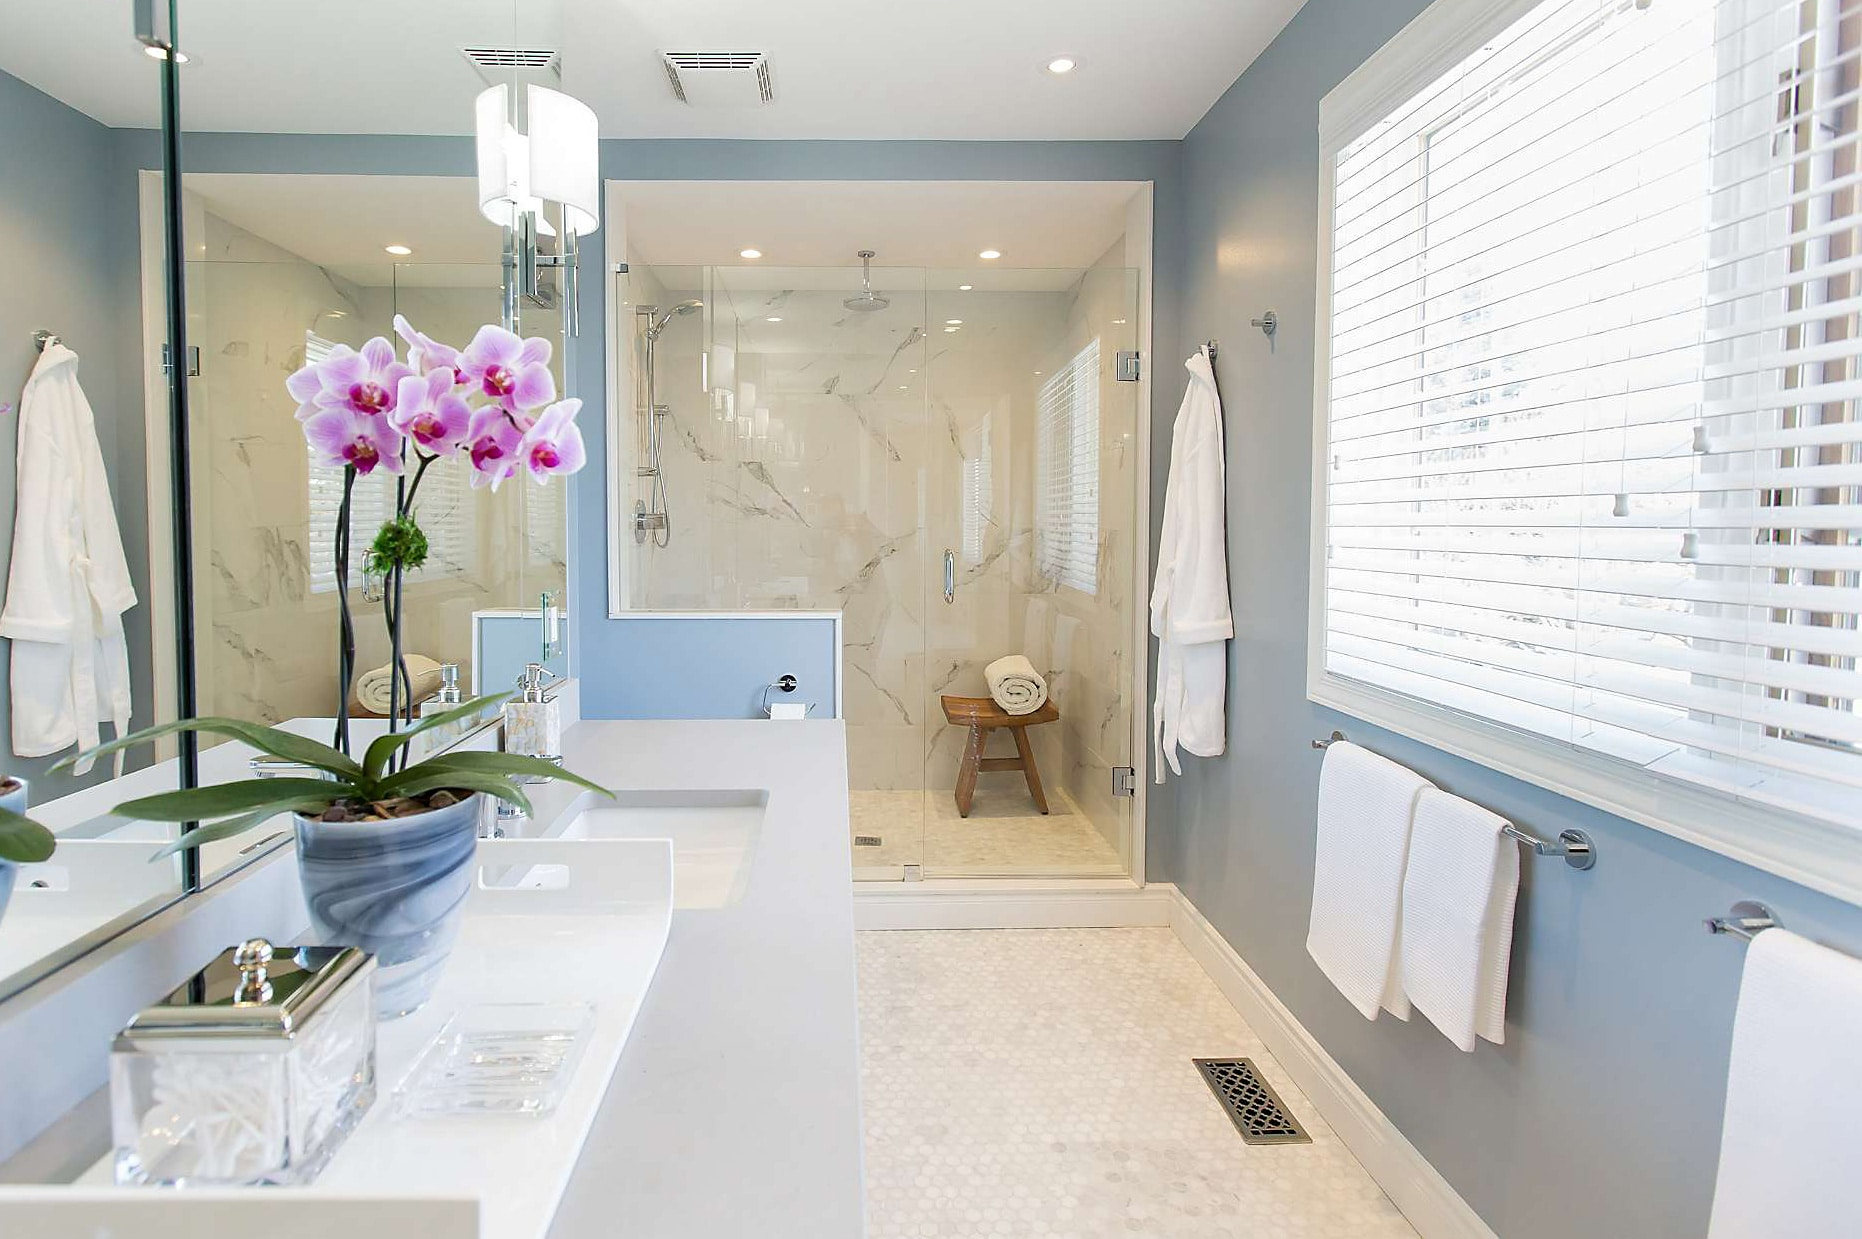 Master bathroom with blue walls featuring quartz countertop, marble shower, tile floor and glass planter with pink orchid